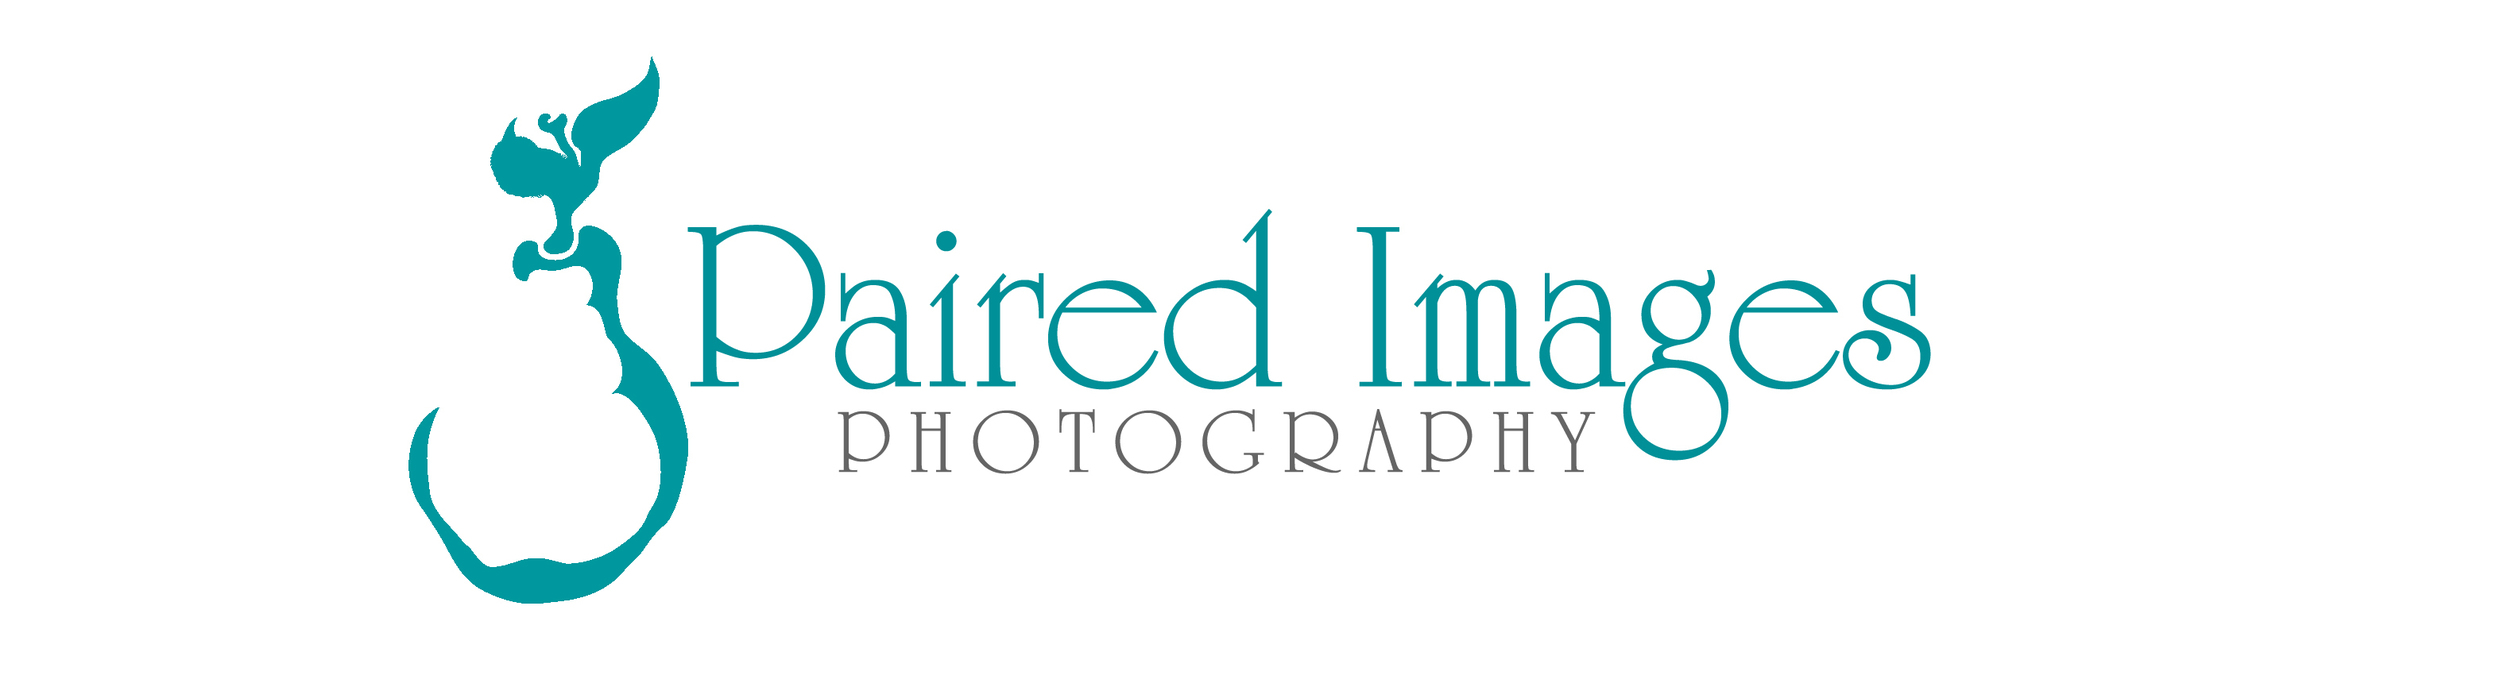 Paired Images at Wedding Blueprint: A wedding open house with DC's top wedding professionals. Feb 22 in Alexandria, VA.